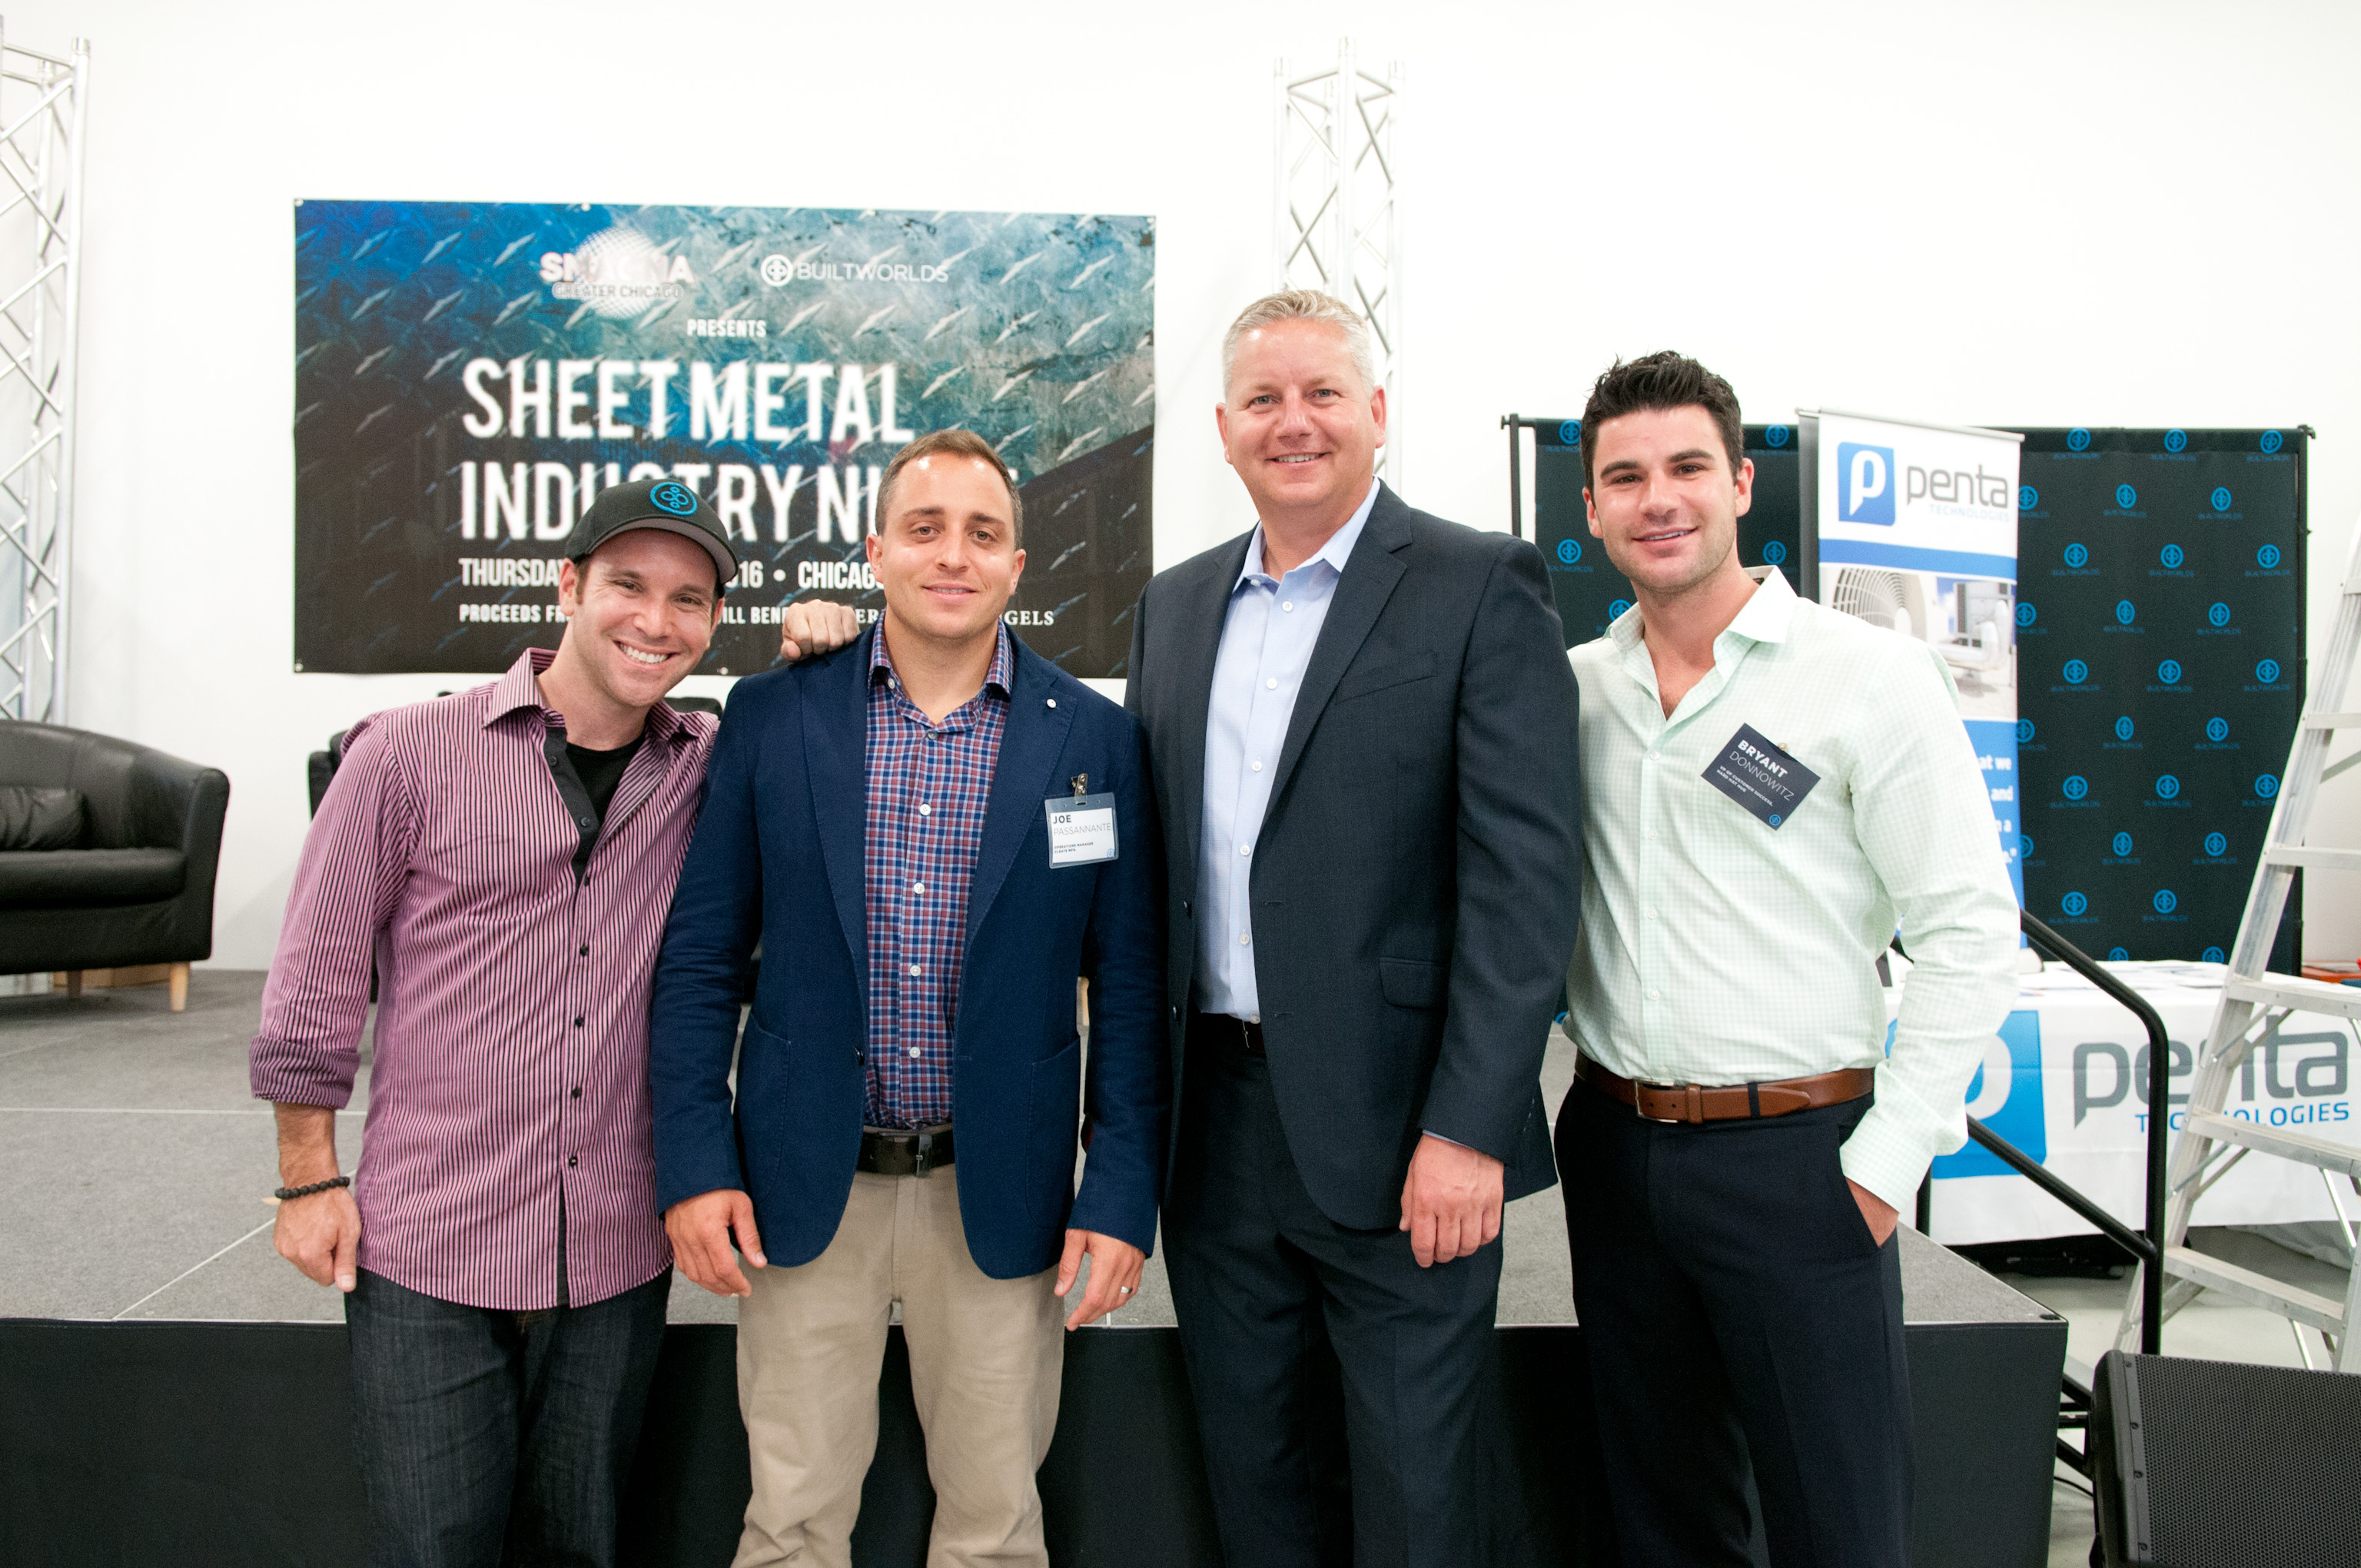 sheet metal event